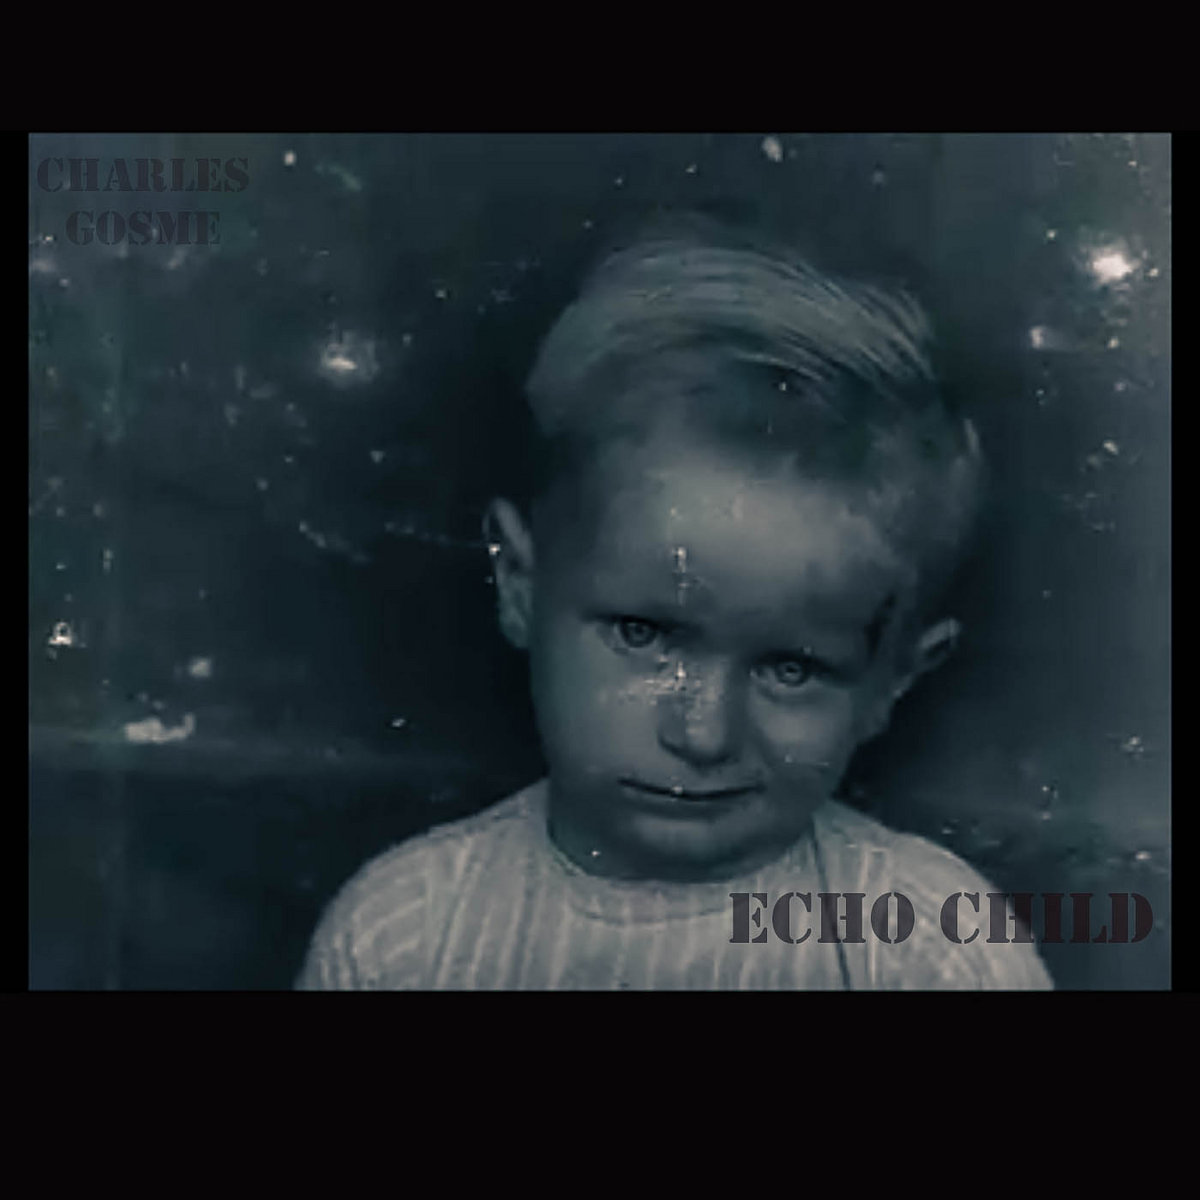 Echo Child by Charles Gosme